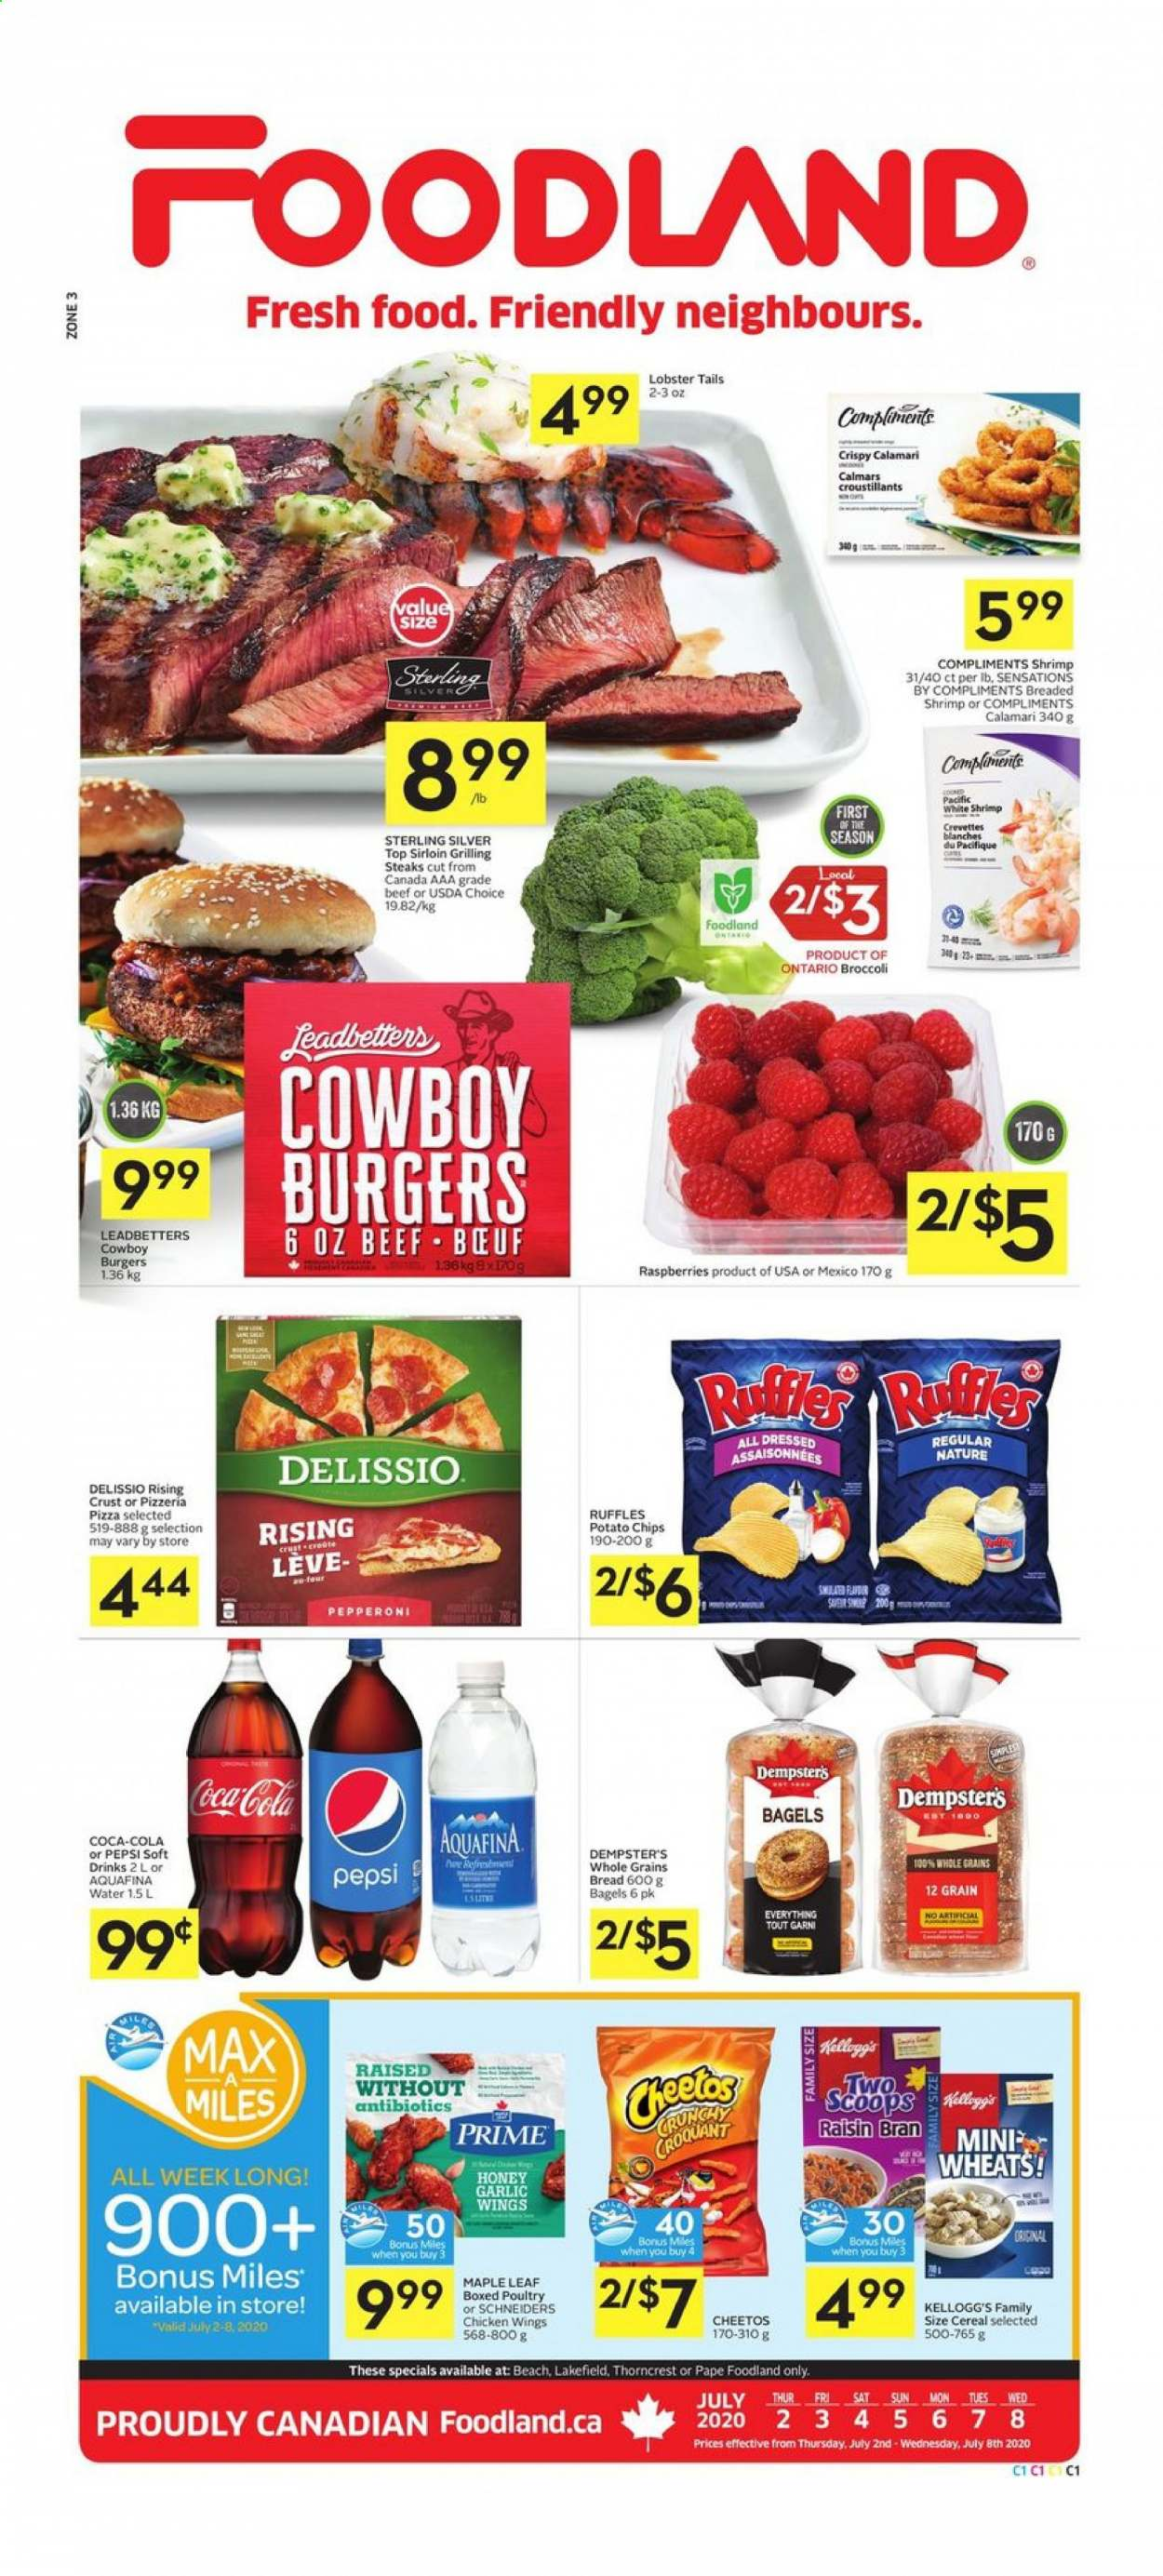 Foodland Flyer - July 02, 2020 - July 08, 2020 - Sales products - aquafina, bagels, beef meat, bran, bread, broccoli, calamari, cereals, garlic, lobster, lobster tails, raspberries, shrimp, honey, pizza, potato chips, cheetos, chicken, pepperoni, pepsi, chicken wings, chips, cereal, crevette, croustillant, kellogg's. Page 1.